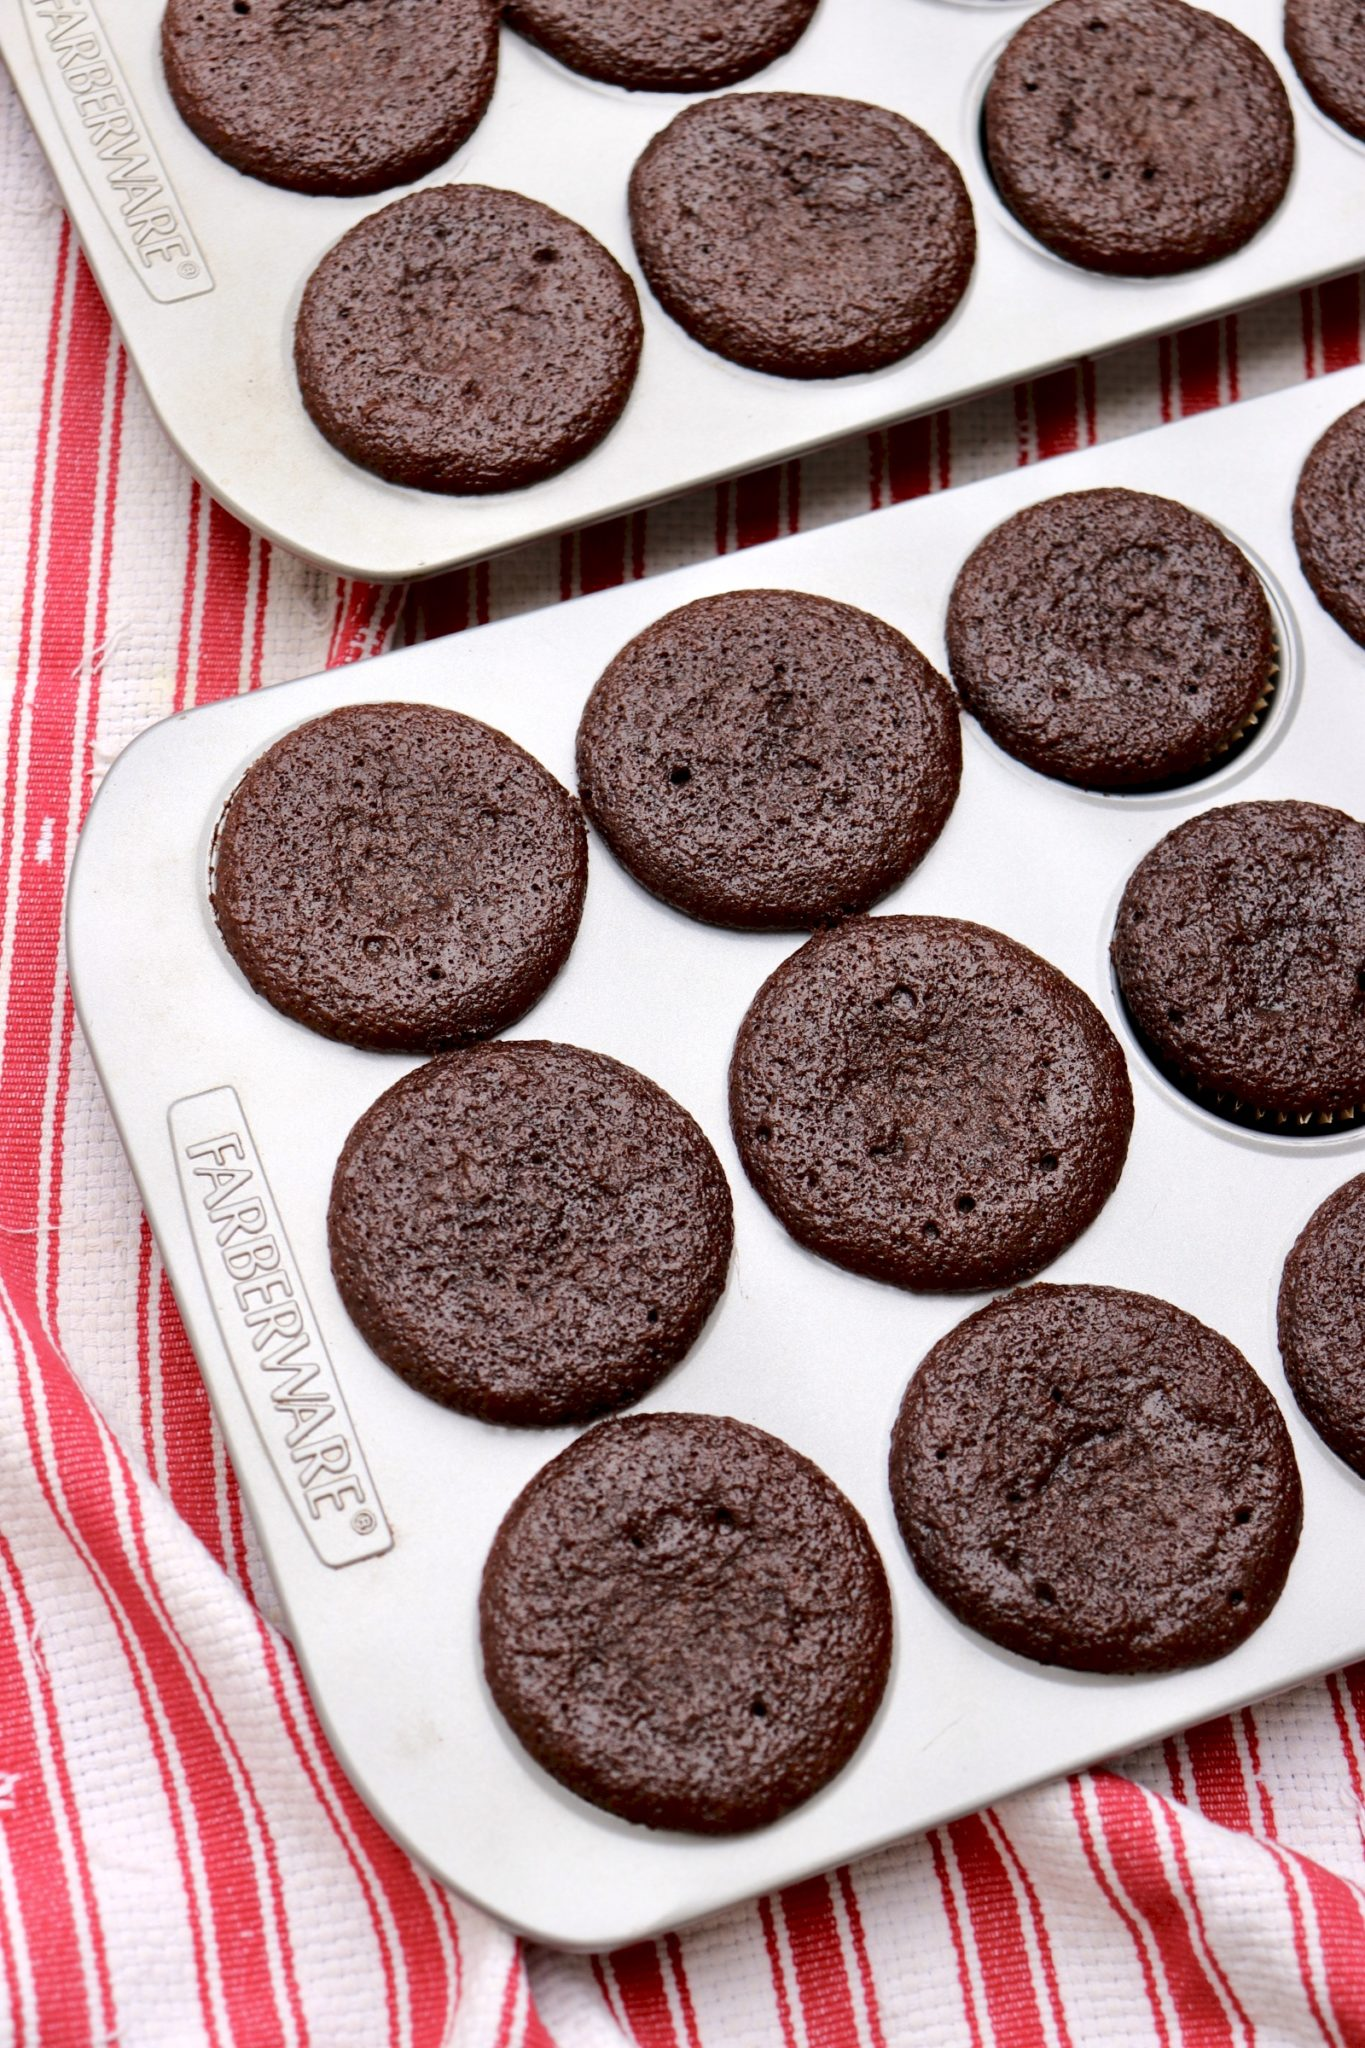 Emma's Favorite Cupcakes-and how to make dairy- and gluten-free adjustments that taste great!